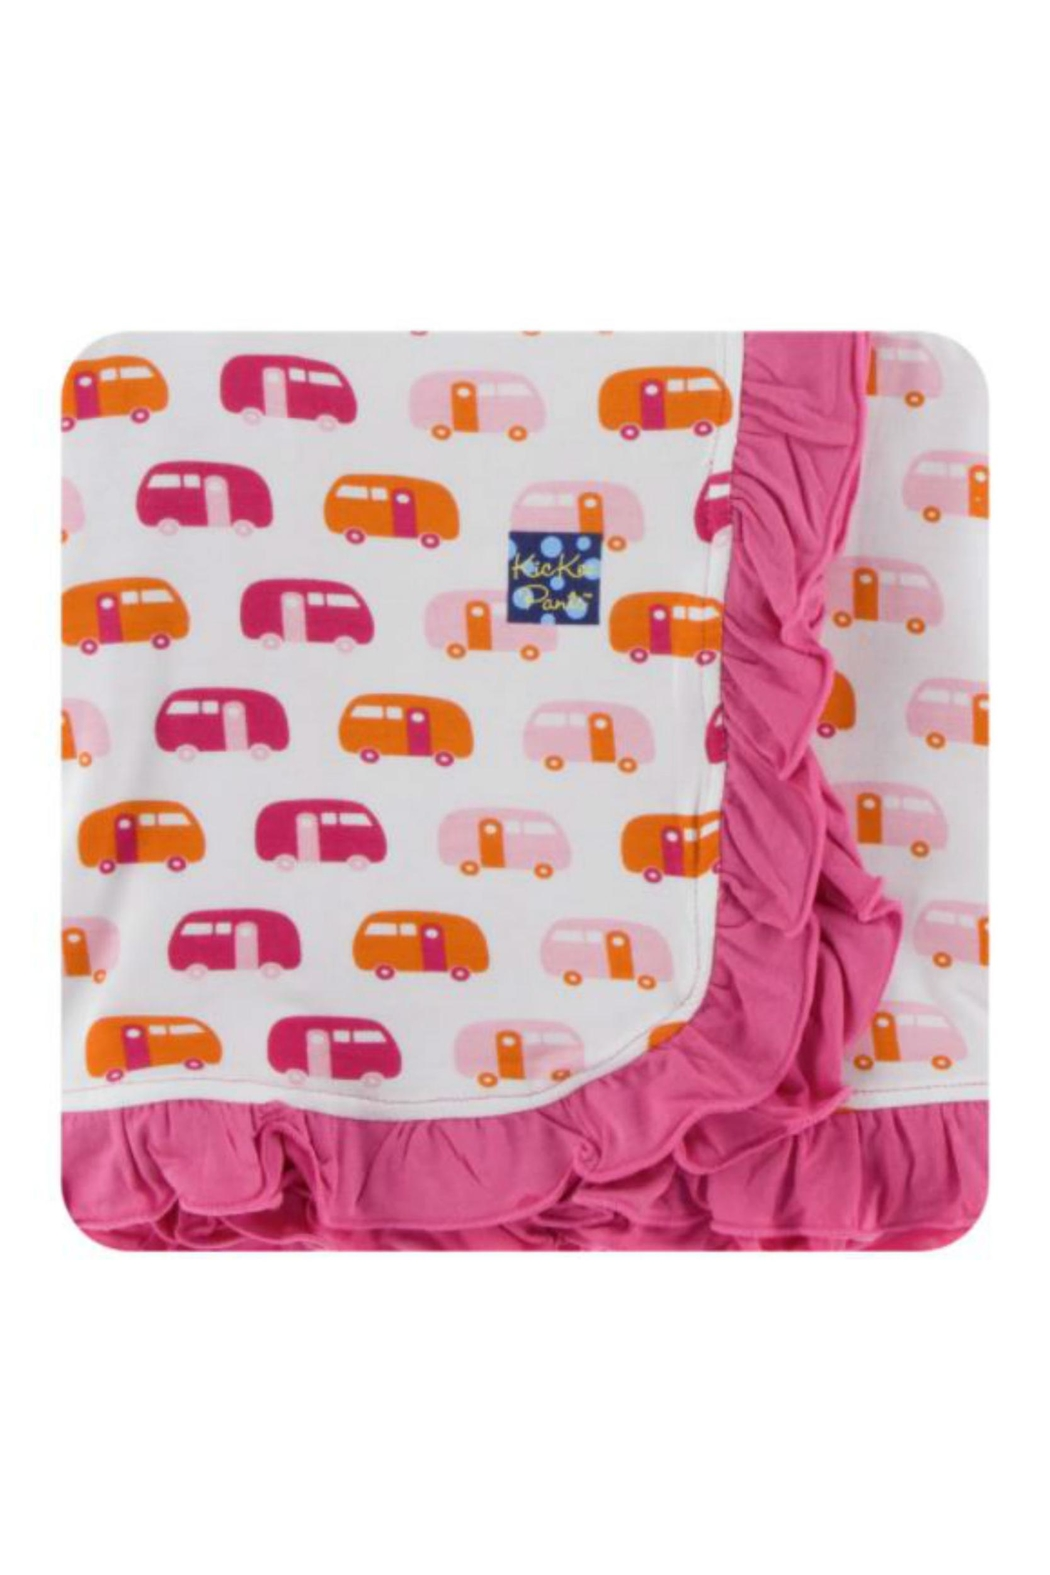 Kickee Pants Natural Camper Toddler-Blanket - Main Image